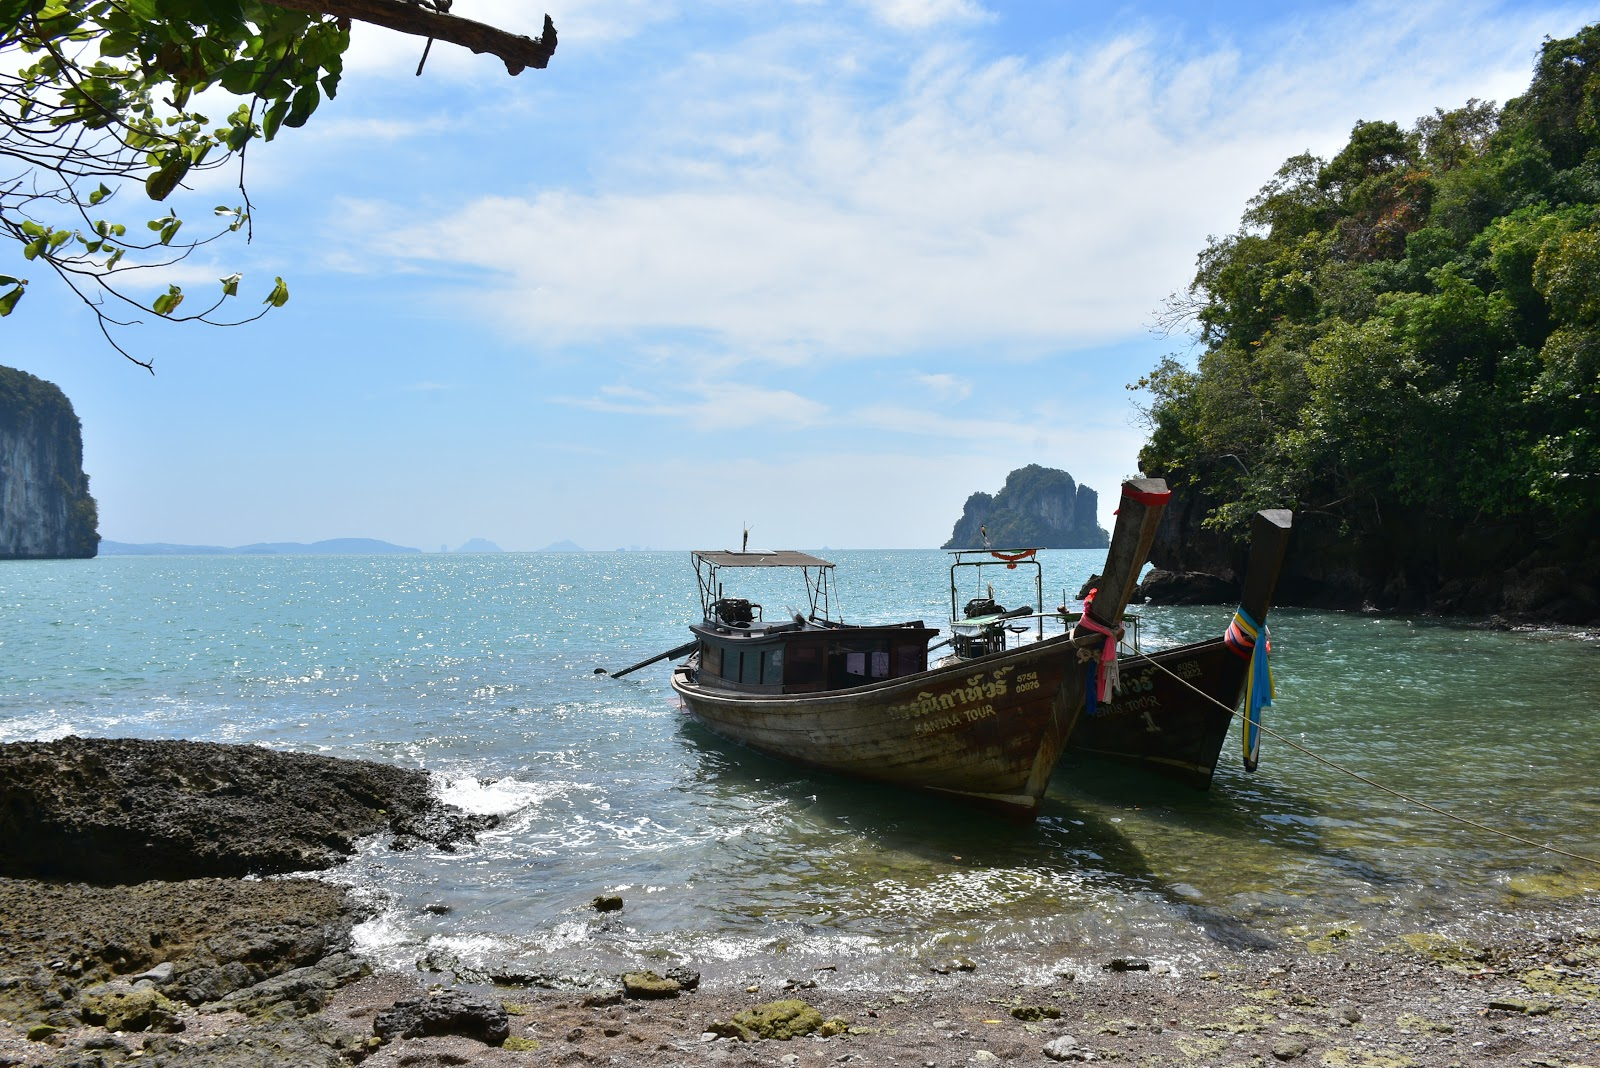 Hong Island Sightseeing Tour with Mr. Baw by Longtail Boat